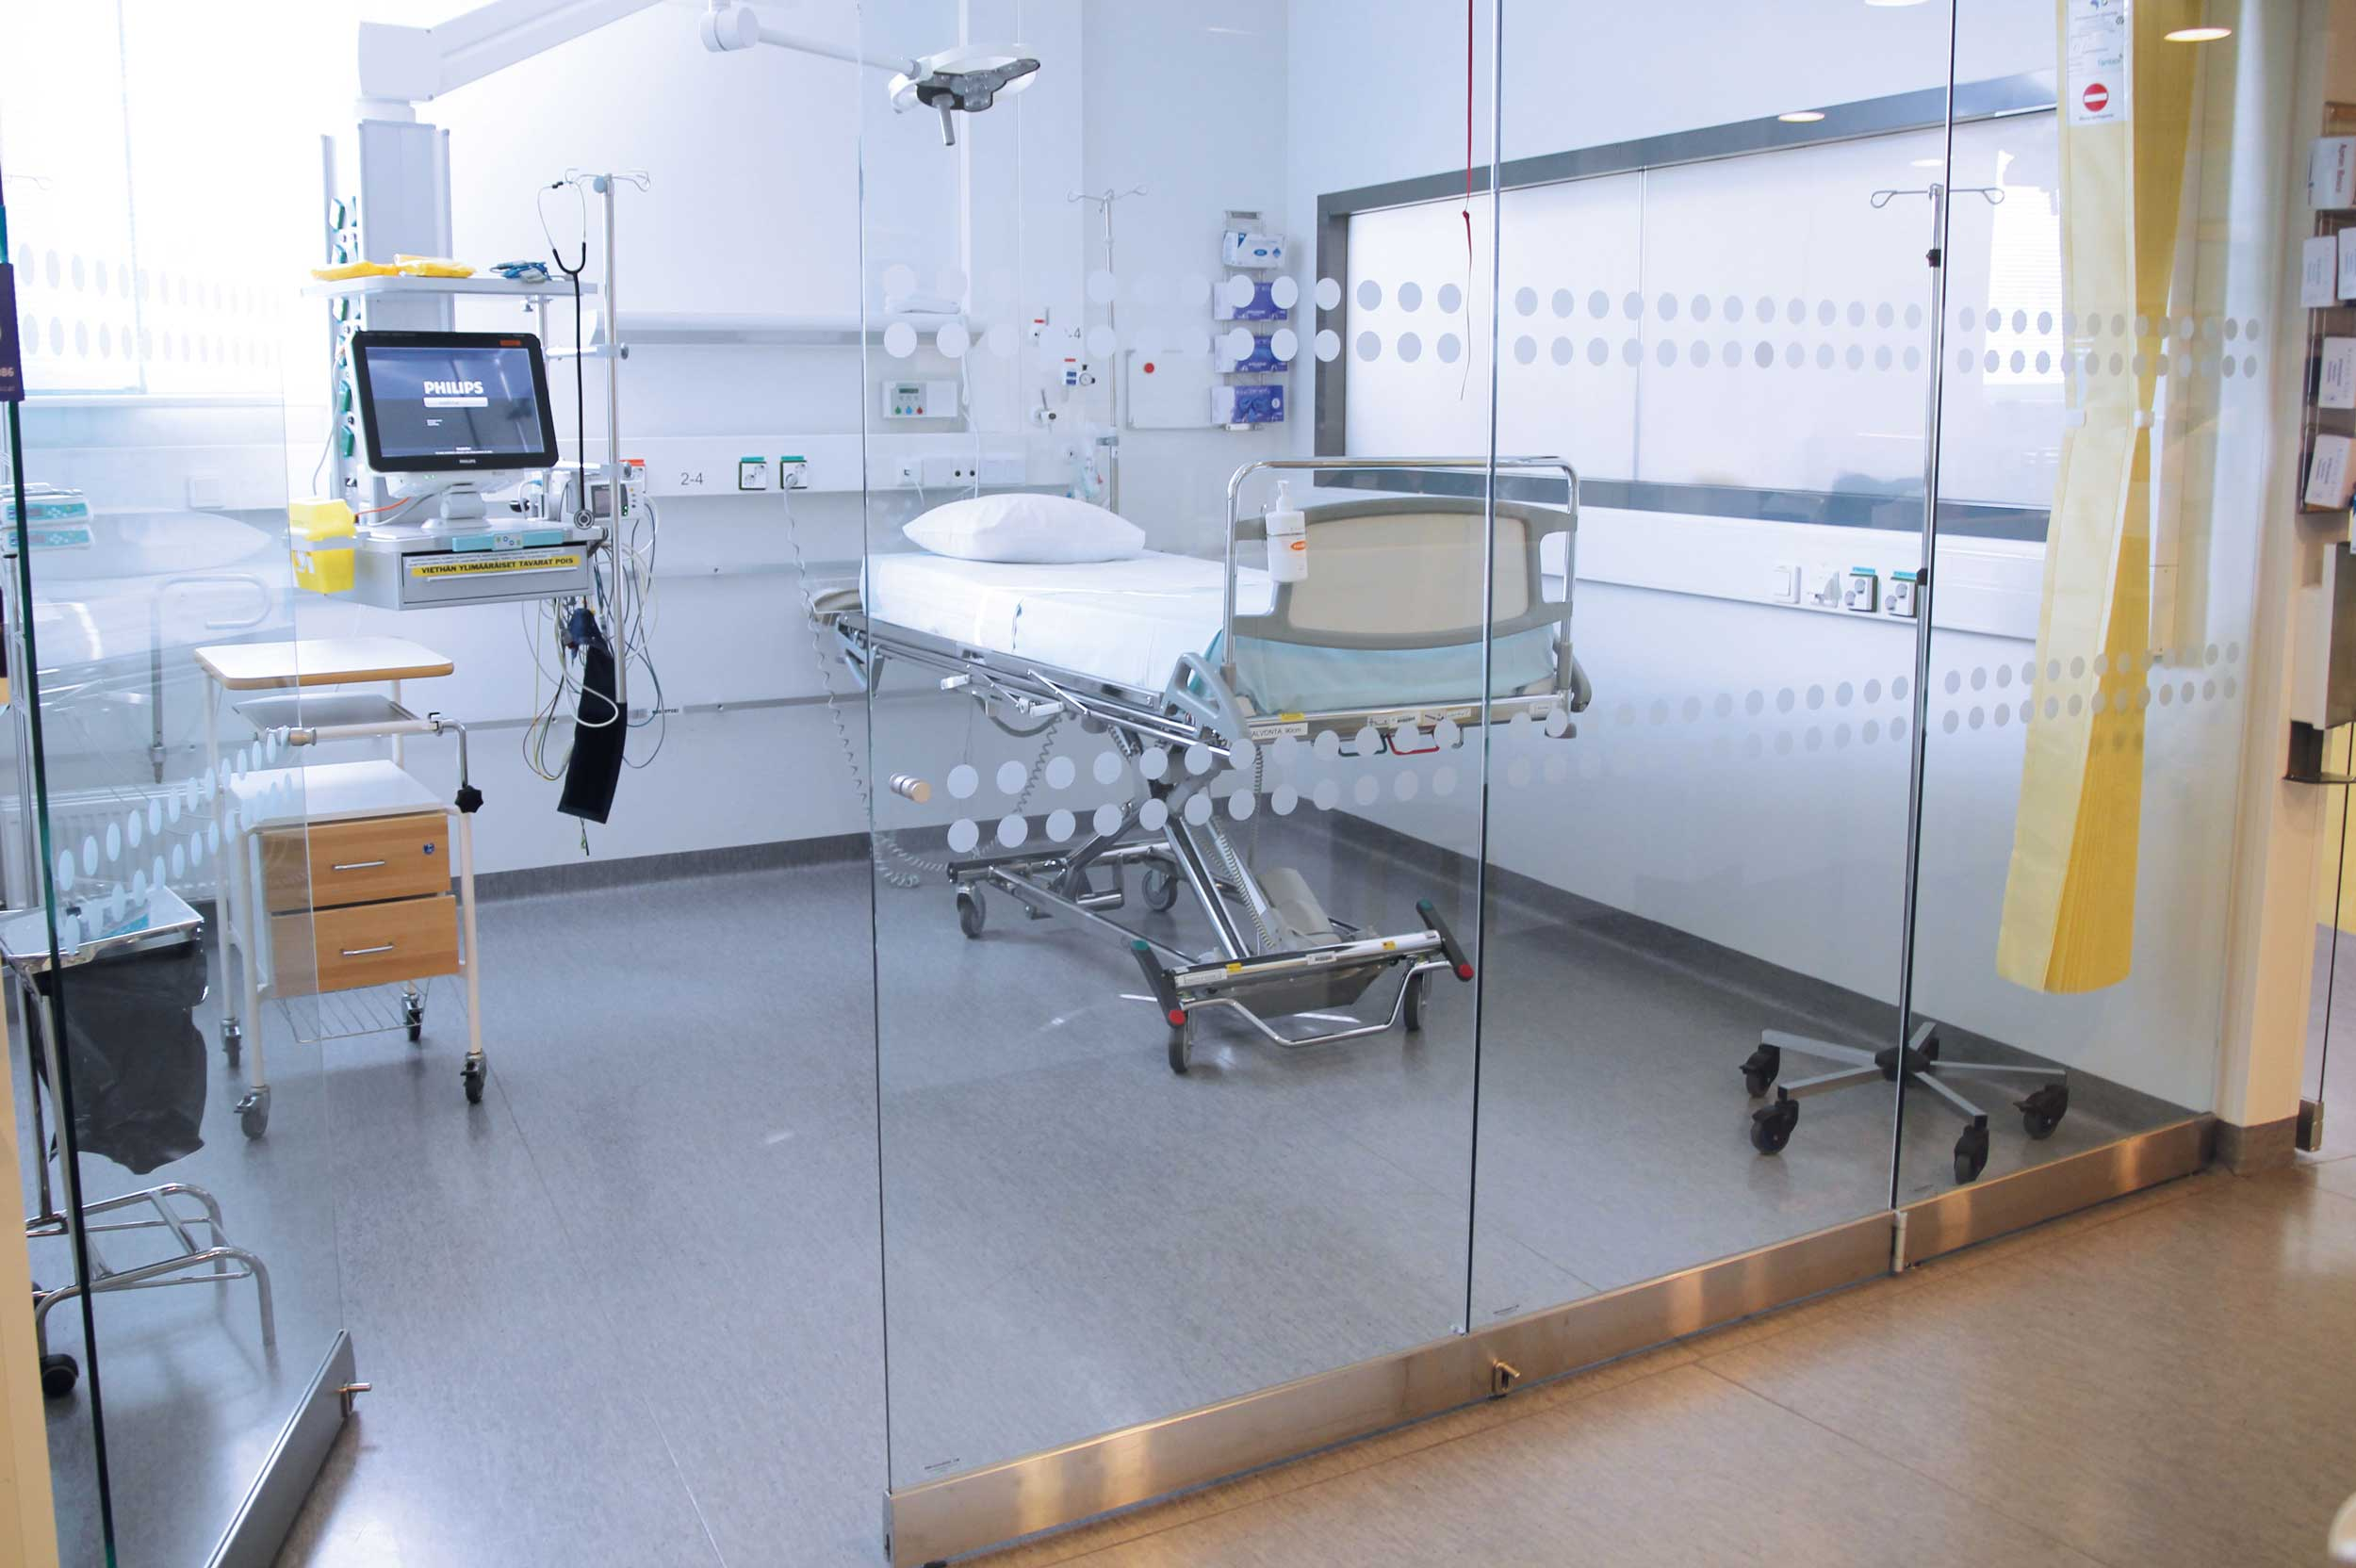 Scanmikael Movable glass walls_ Fixed smart glass walls_Malmin hospital_Helsinki, Finland